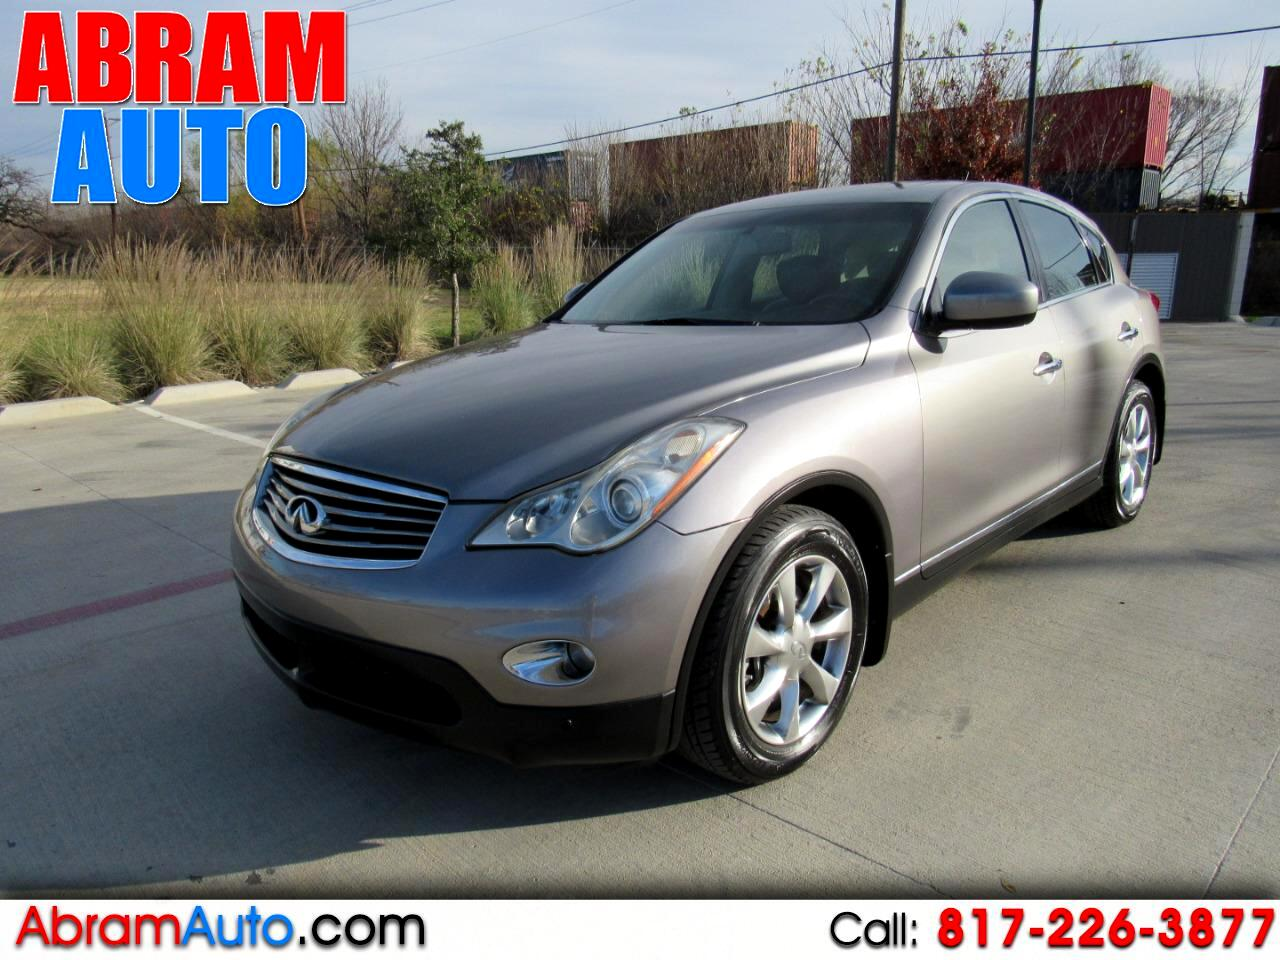 Buy Here Pay Here Arlington >> Buy Here Pay Here 2008 Infiniti Ex Ex35 For Sale In